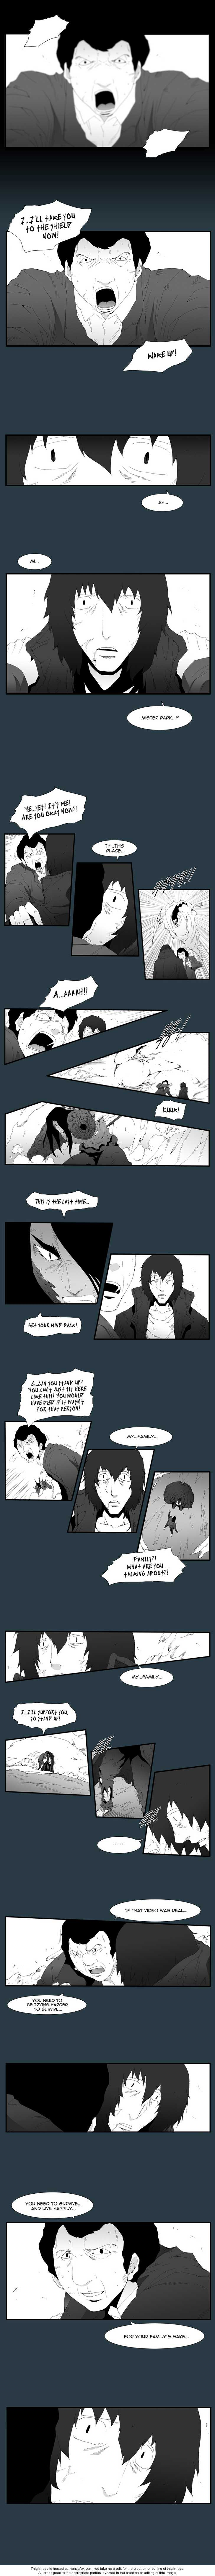 Trace 27 Page 2